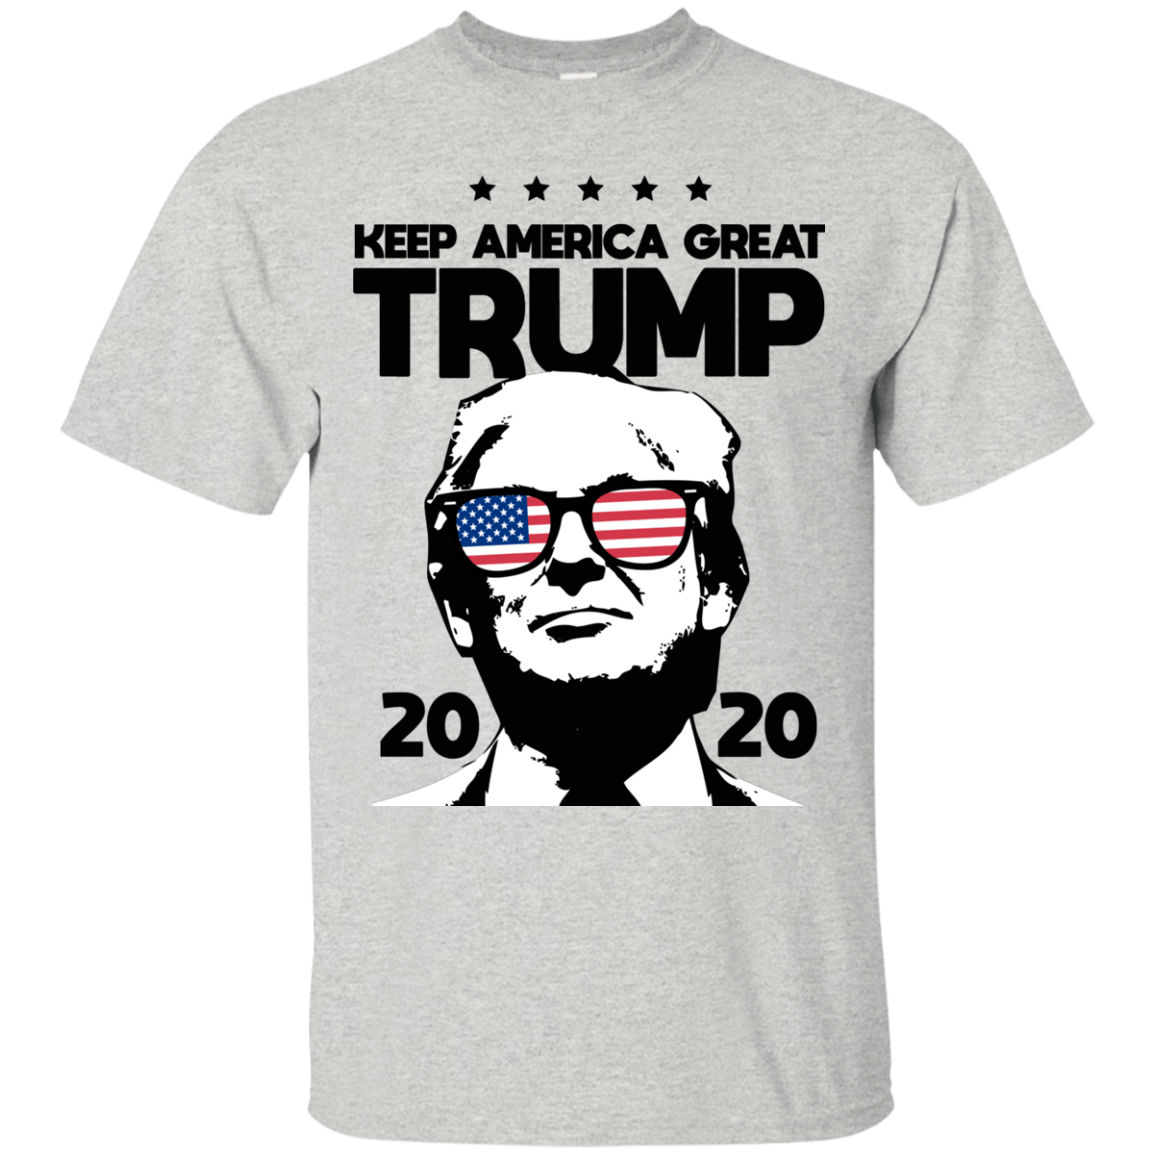 Trump 2020: Keep America Great